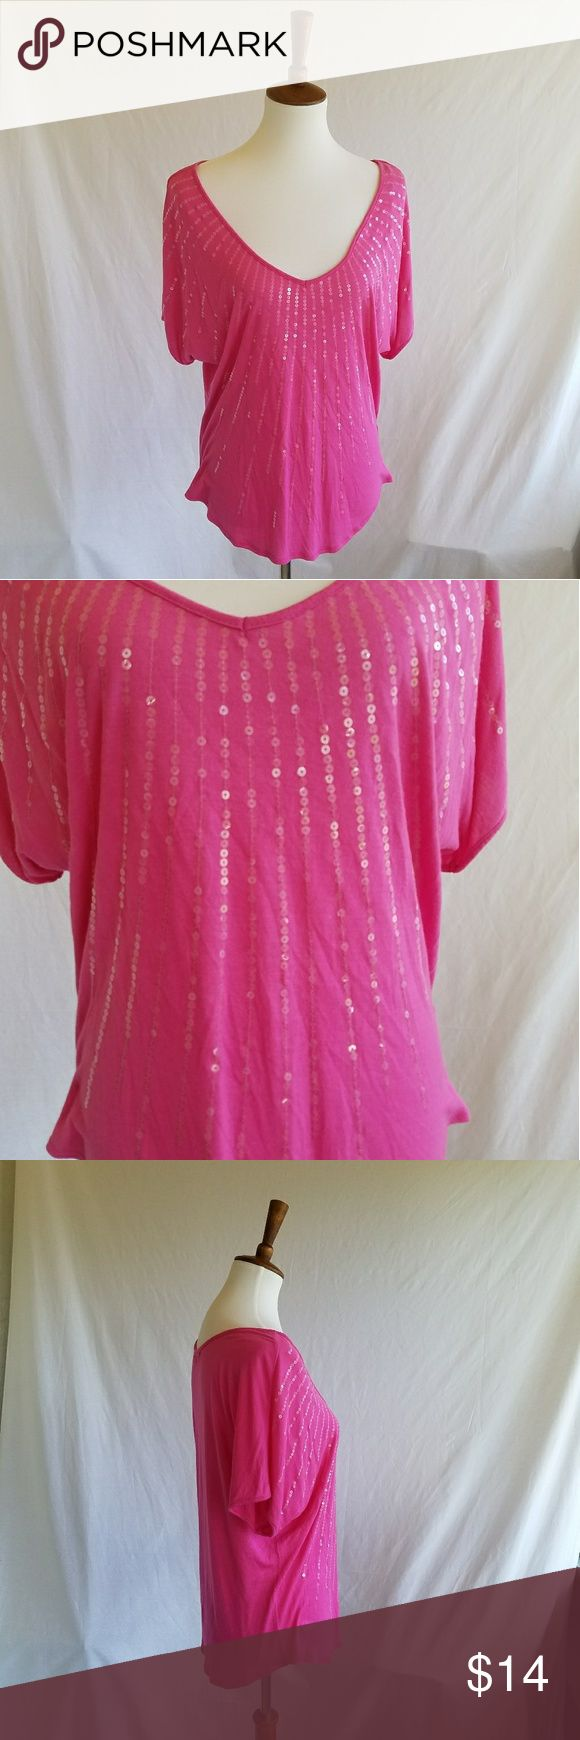 Maurices Pink Sequin Slouchy Top Gently used .  Soft . Stretch .  #050506 Maurices Tops Tees - Short Sleeve